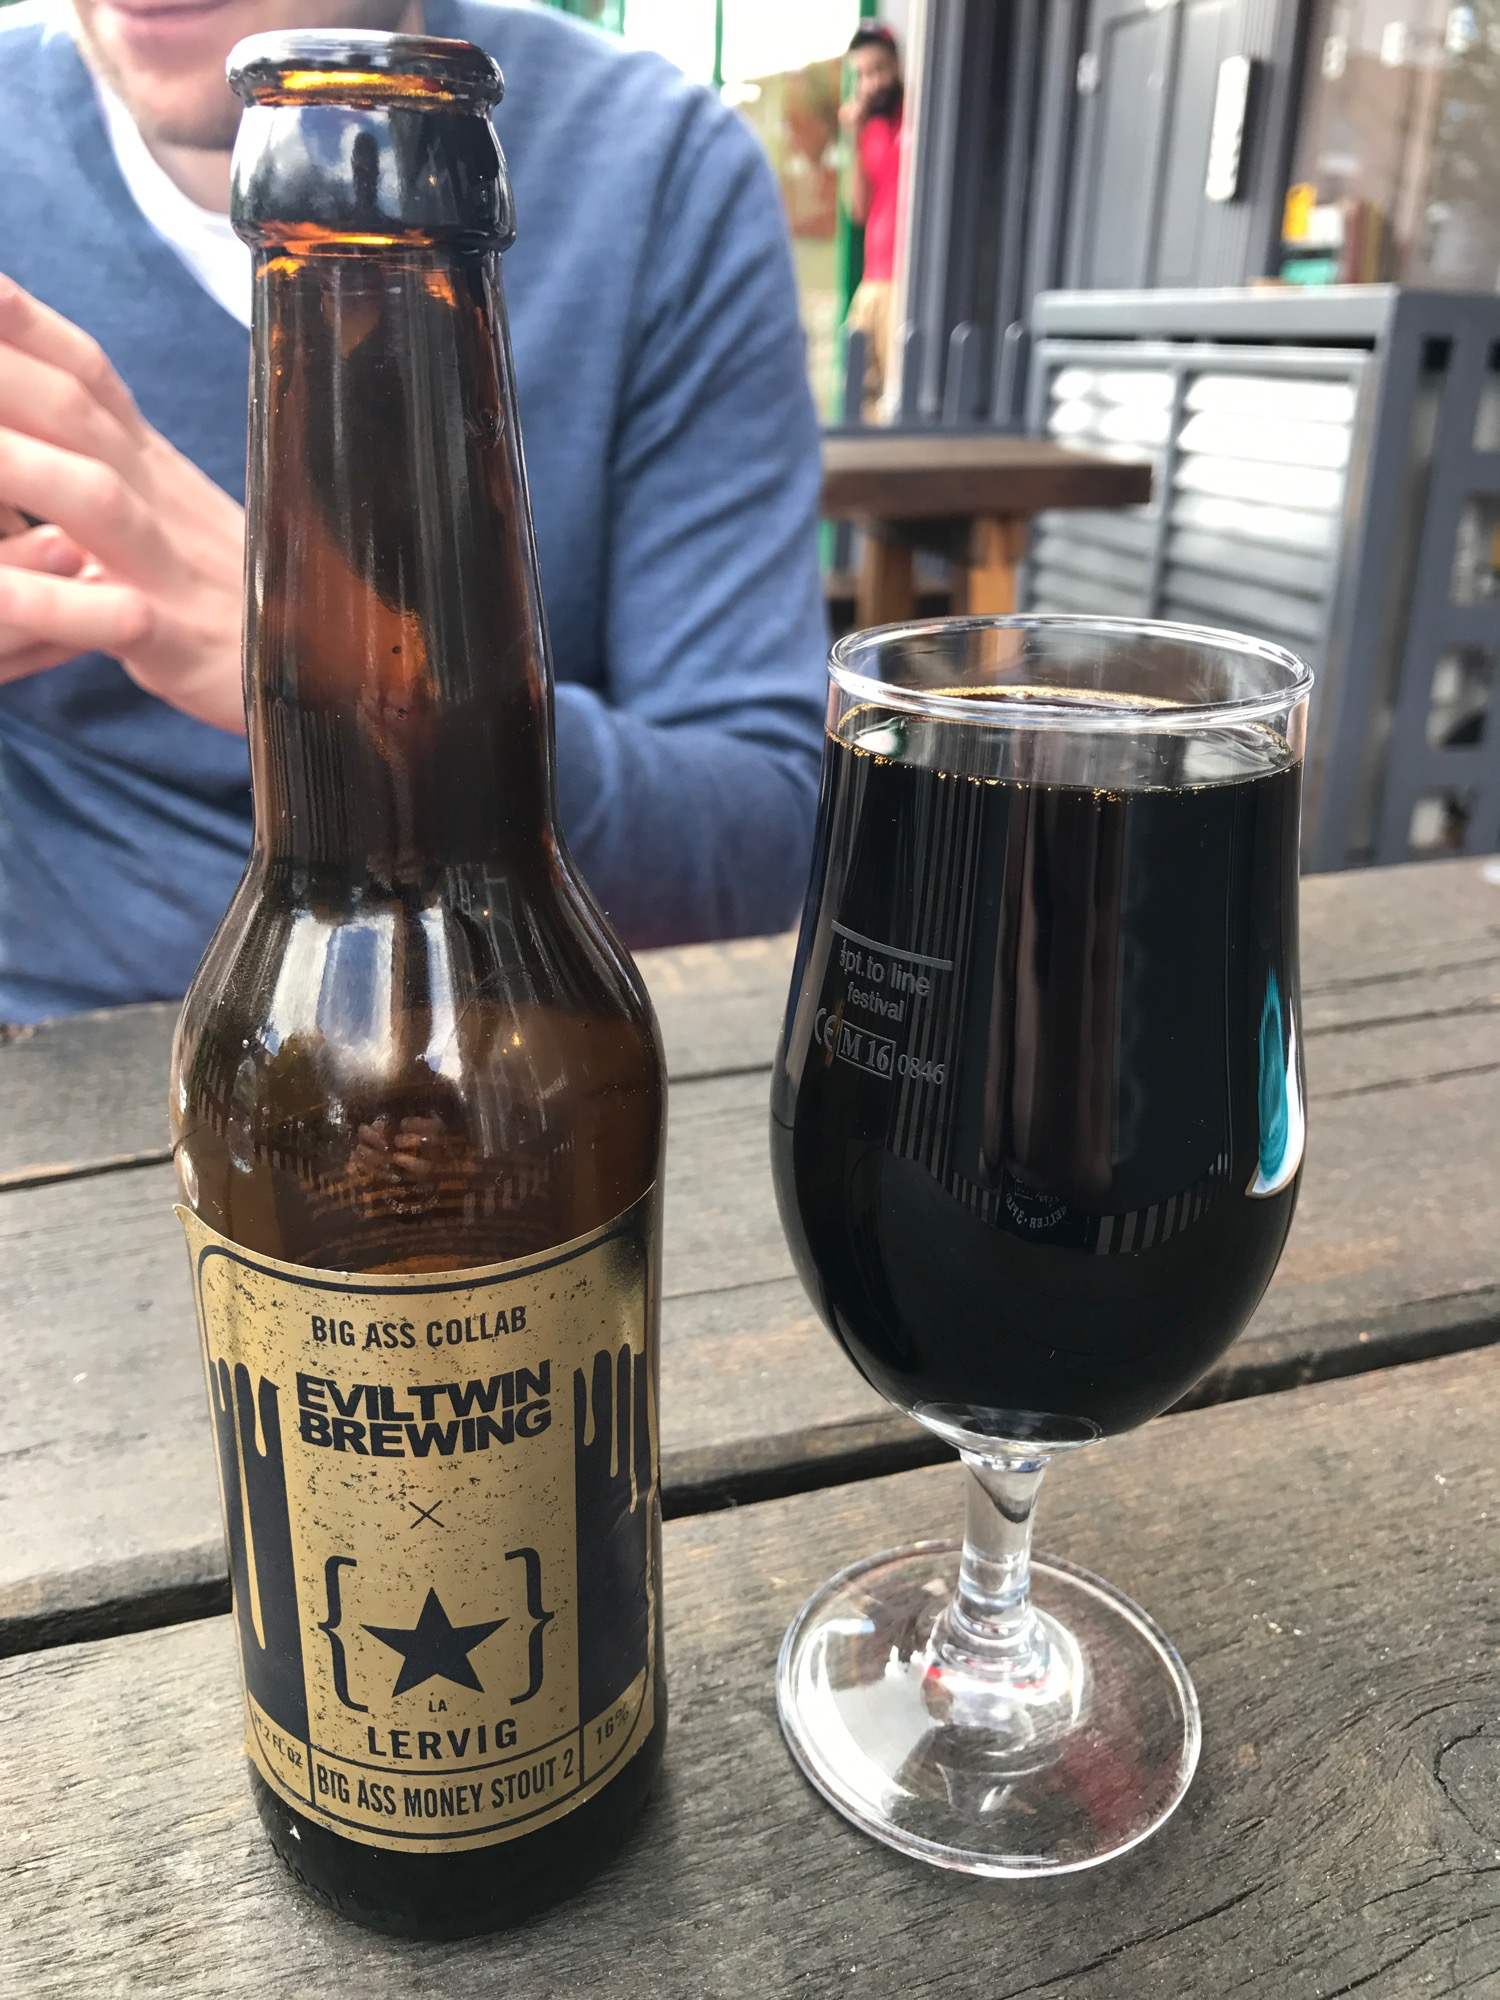 Big Ass Money Stout 2 - Imperial Stout 16%  // Lervig x Evil Twin Brewing  - And you thought the Paradox Rye was going to be the strongest beer this month. Think again. I professed my love for this in the Peckham write-up, go check it out there.